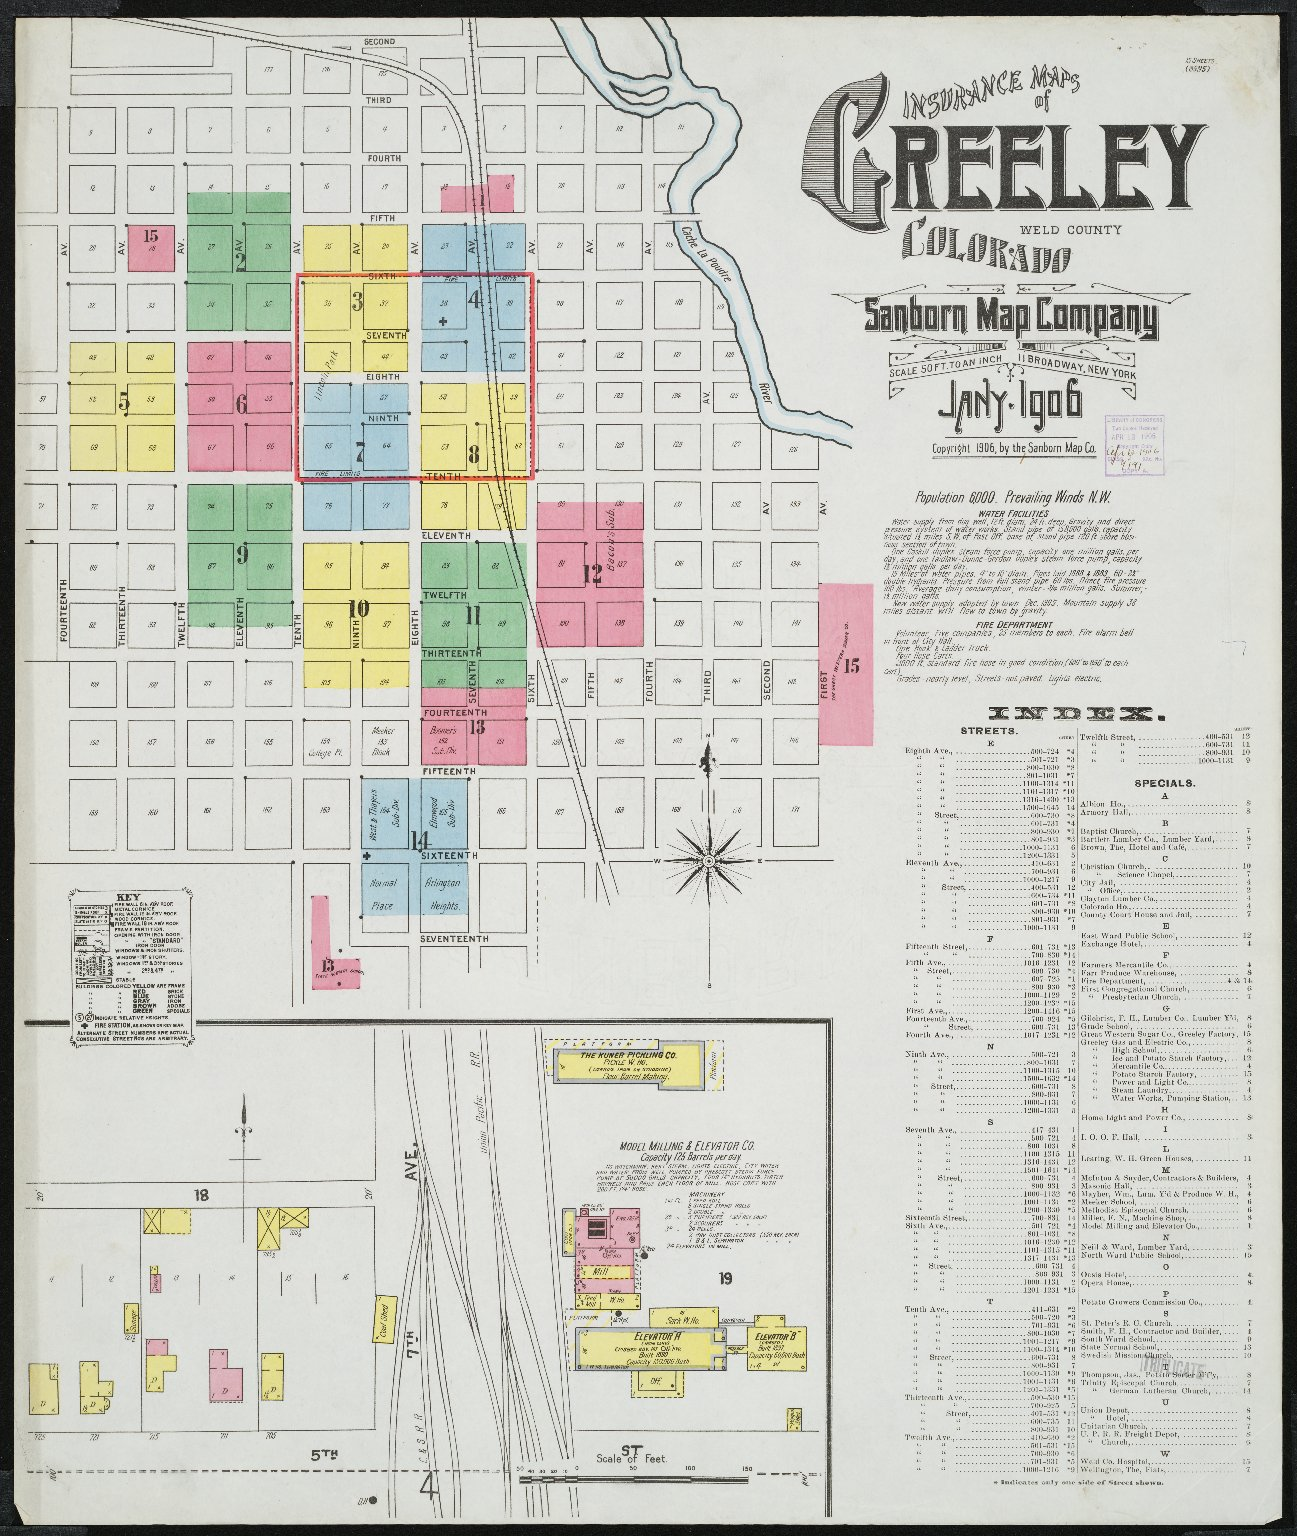 Insurance maps of Greeley, Weld County, Colorado